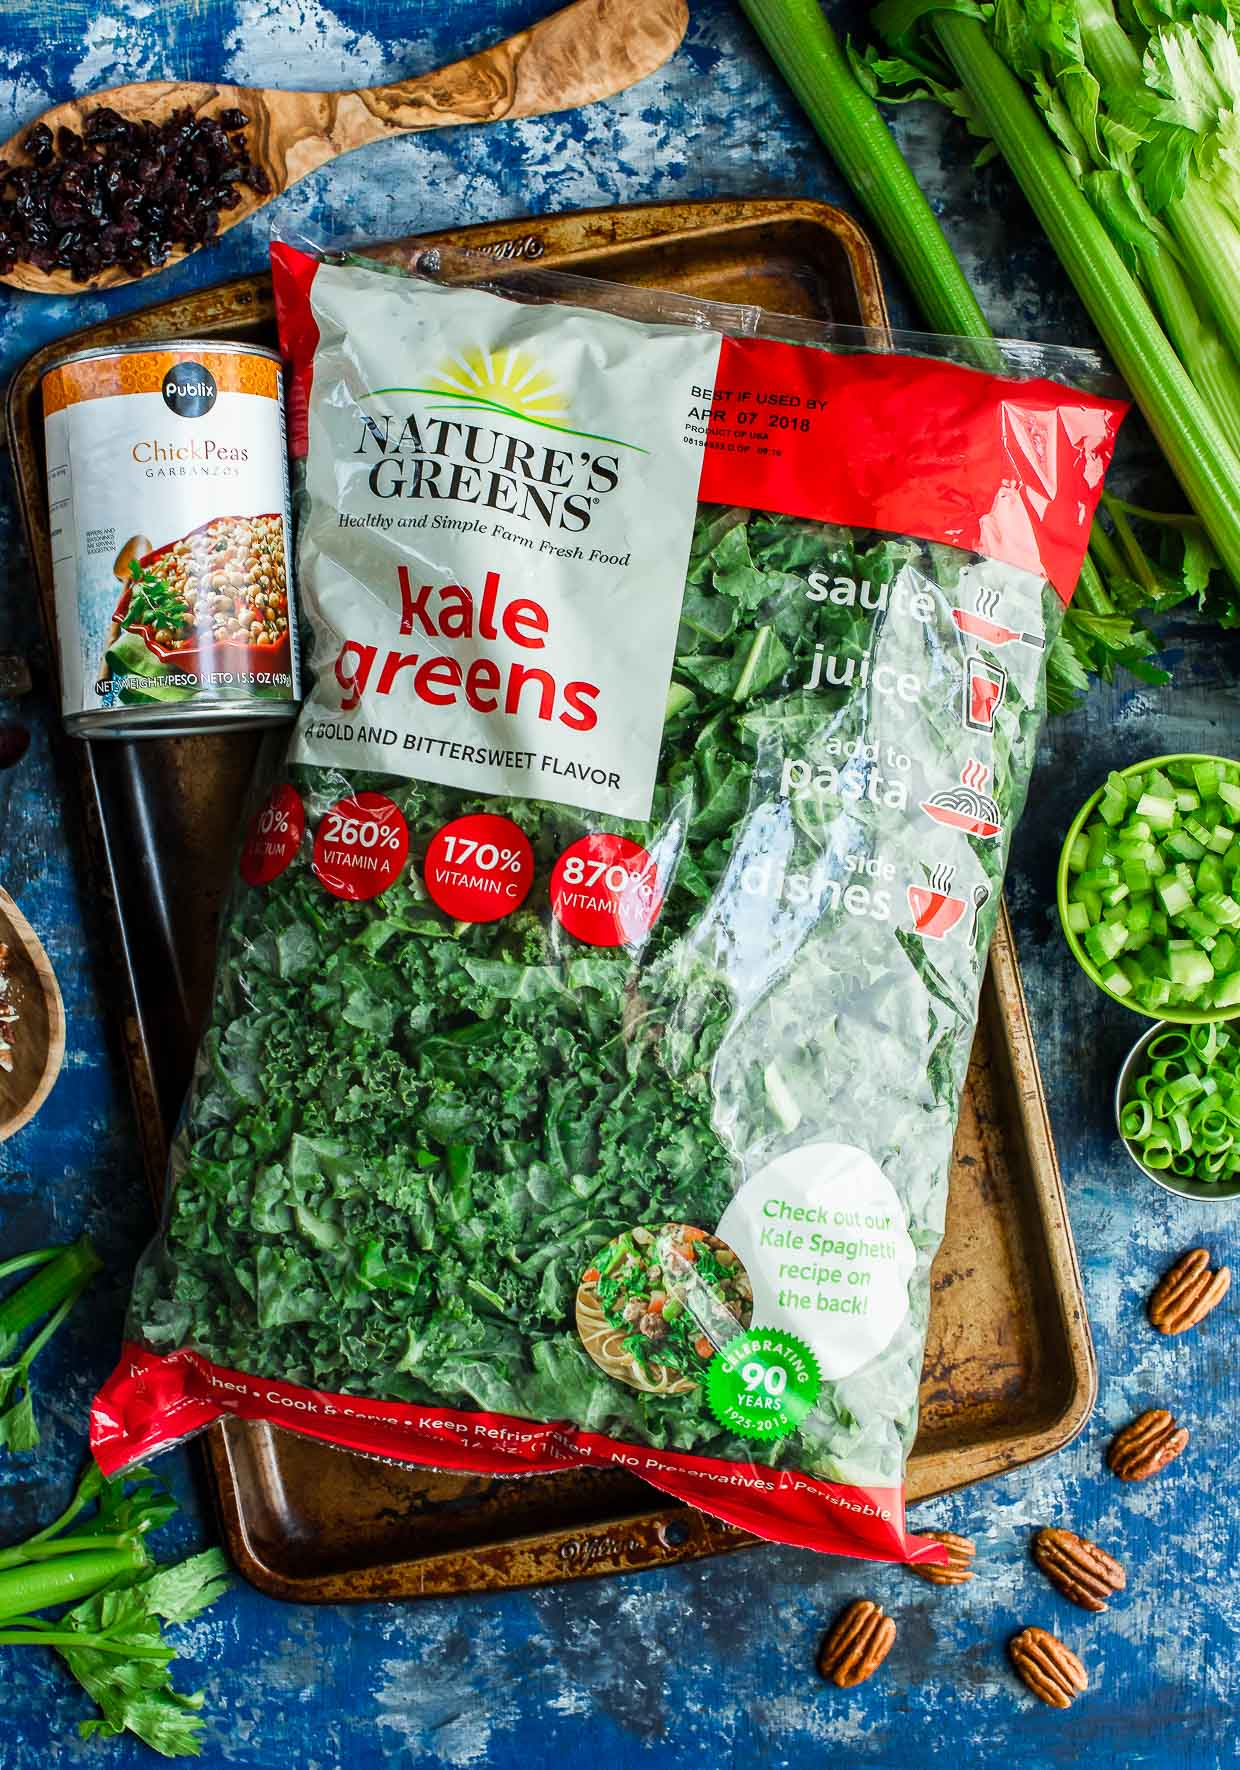 WP Rawl Nature's Greens Kale Greens chopped in bag